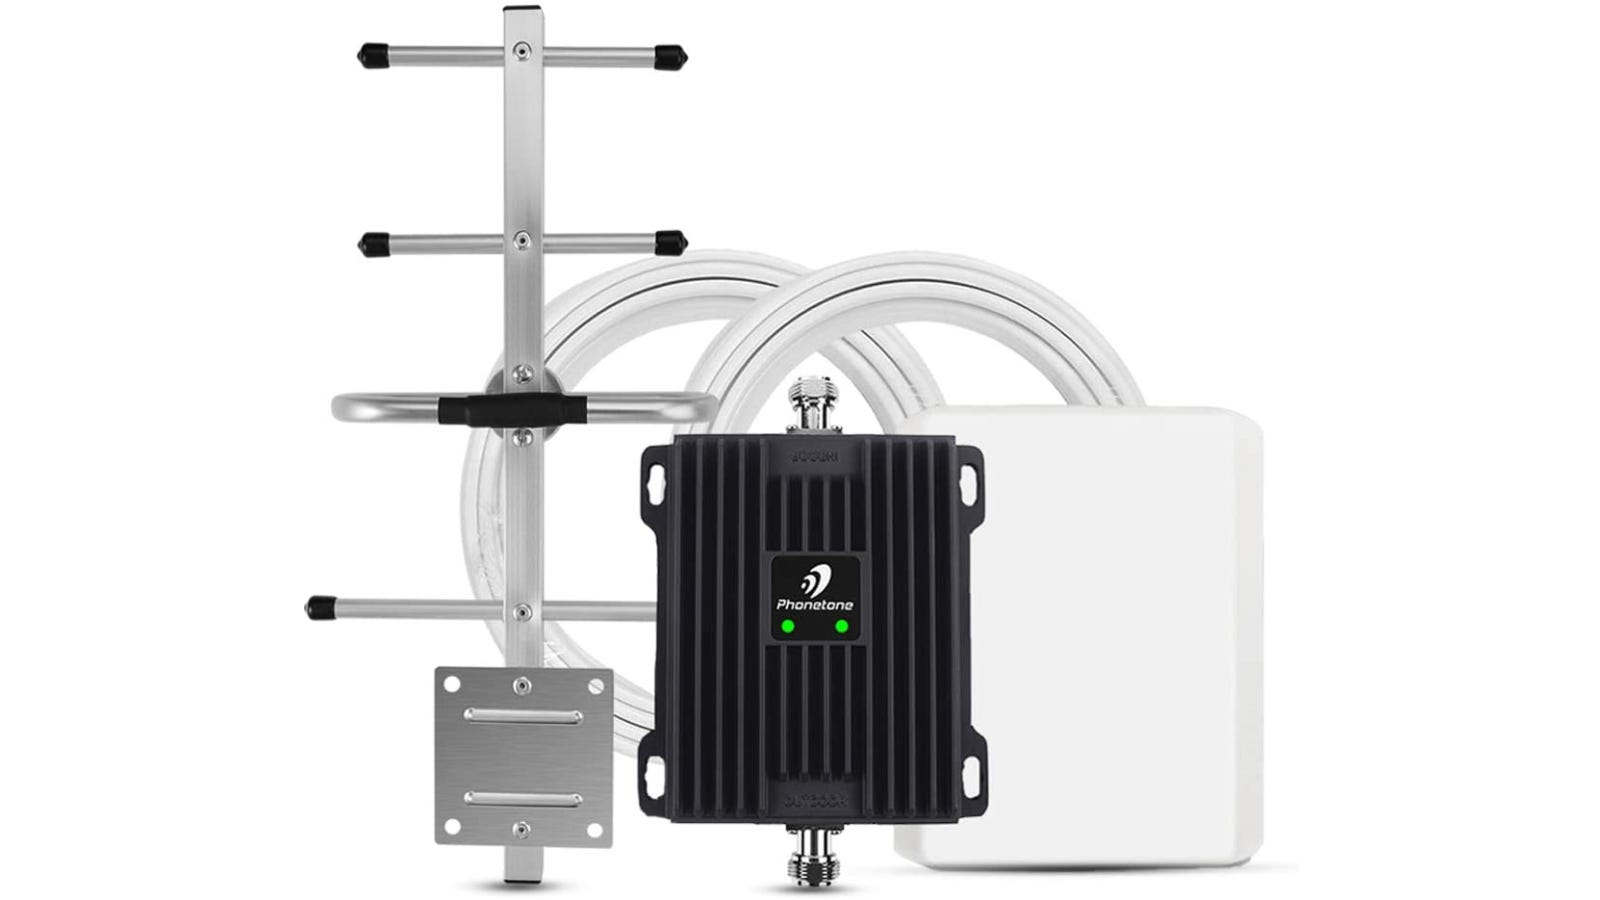 silvery, black, and white cell phone signal booster kit